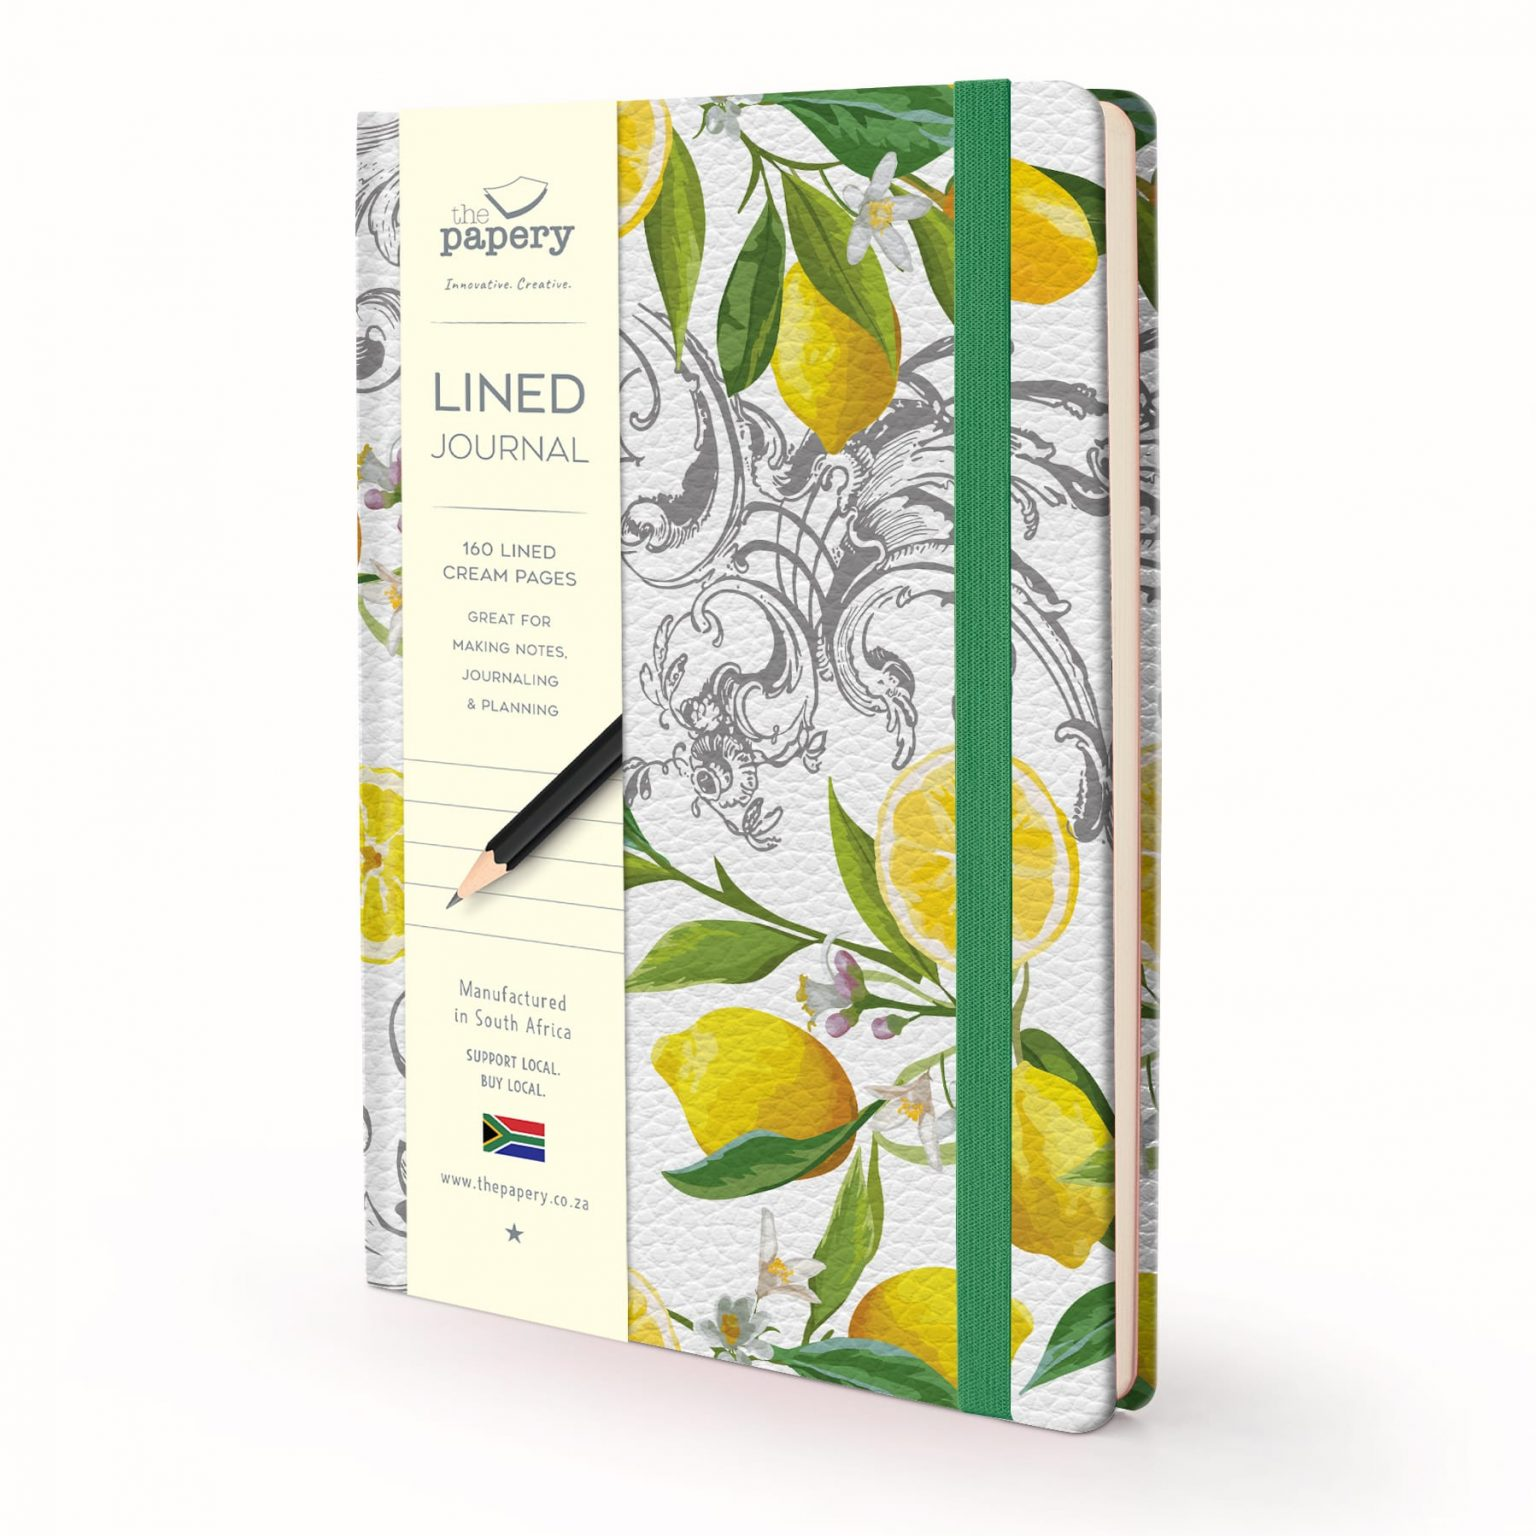 Image shows a Designer Floral - Lemon Lined Journal